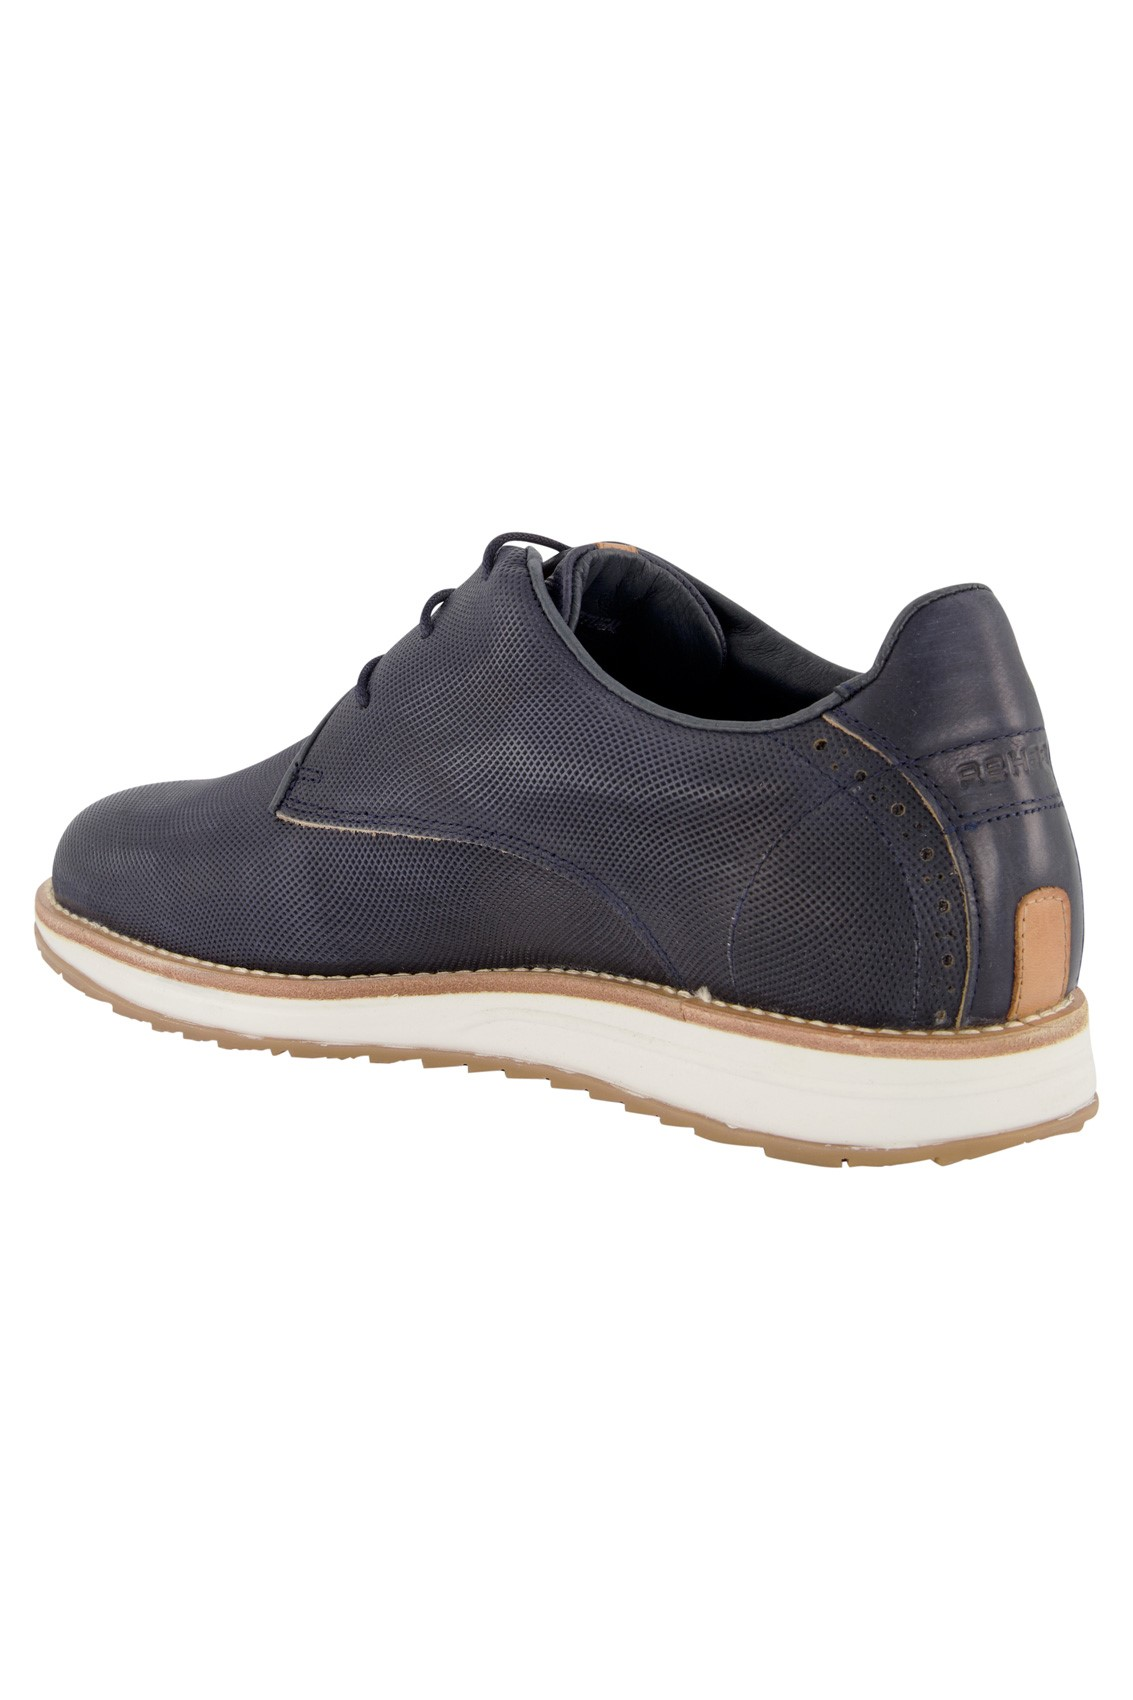 Chaussures Réadaptation Nolan Sombres Perforations VSCaqxDY6l